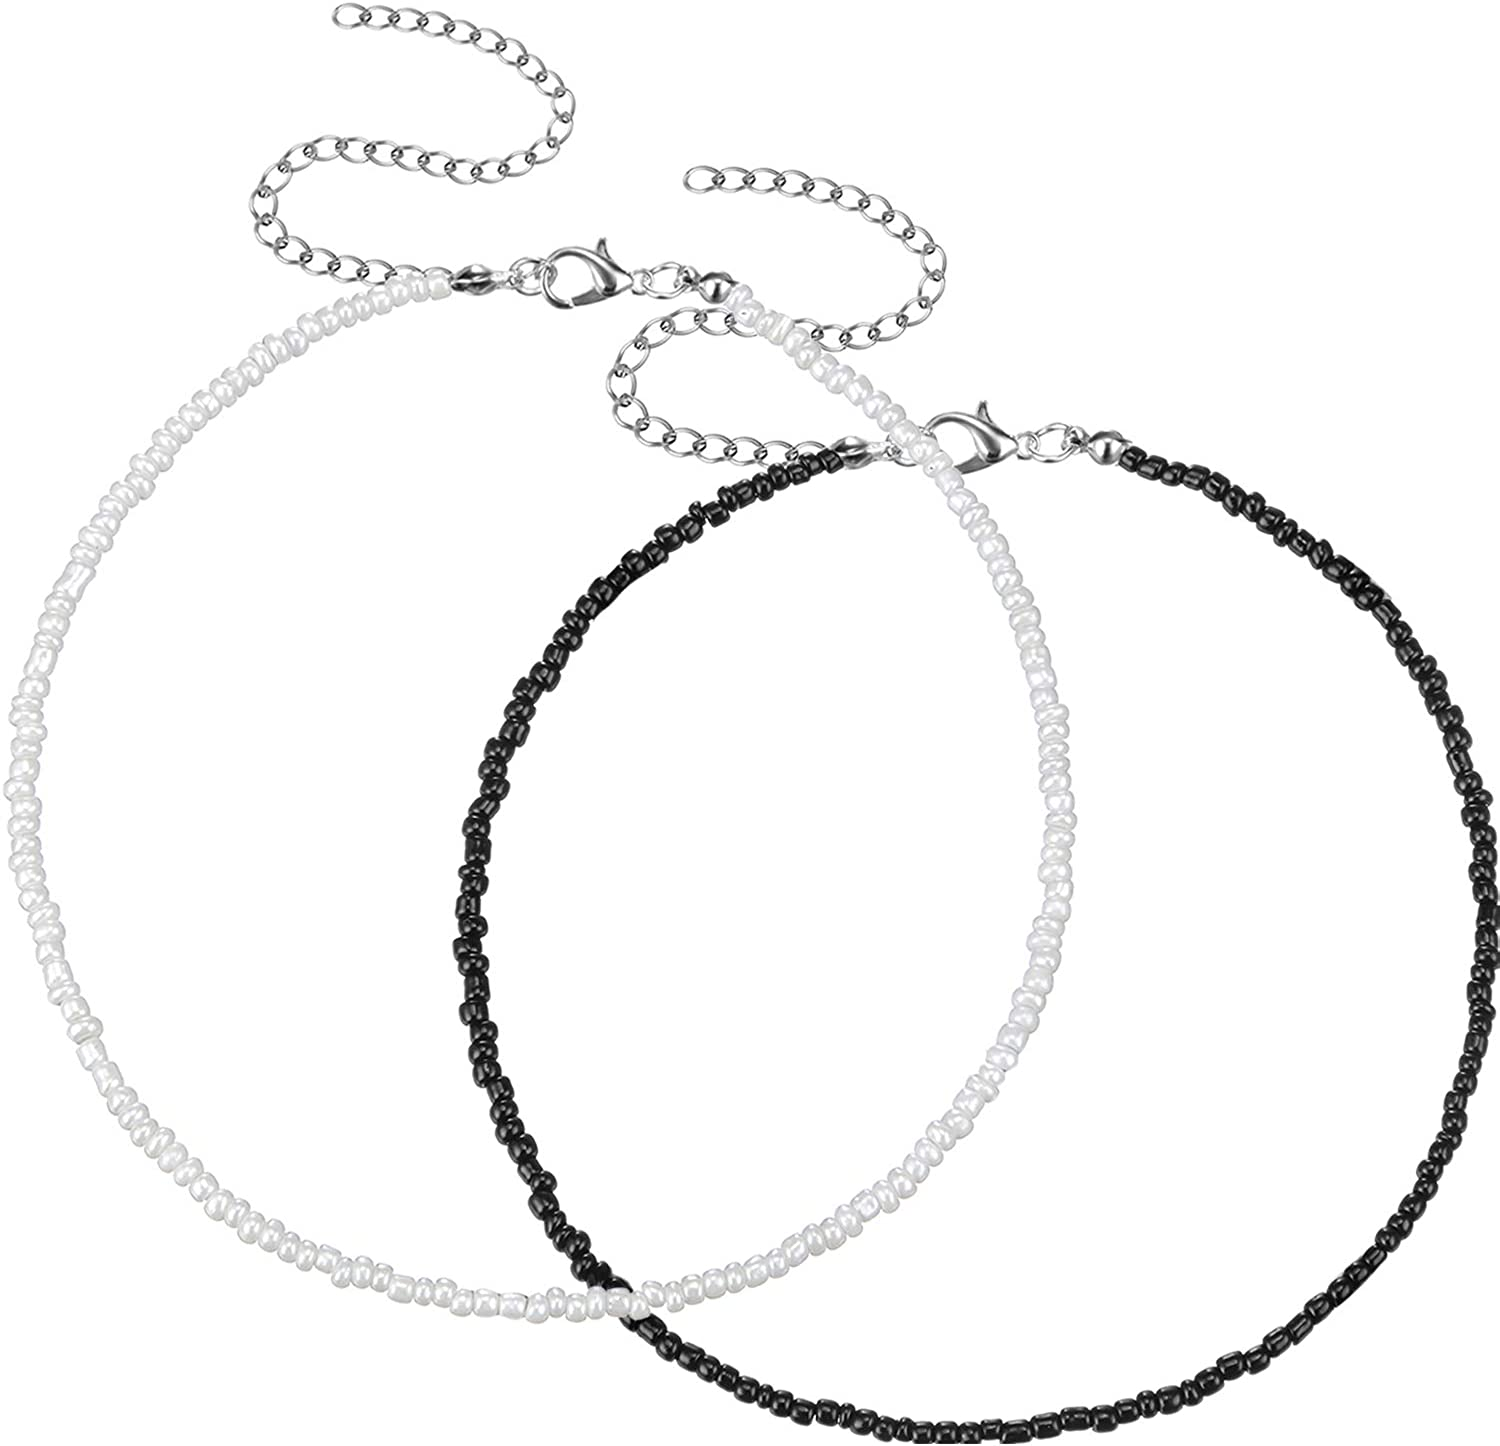 Hicarer 2 Pieces Bead Seed Necklaces Choker San Antonio Mall Max 80% OFF Bohem